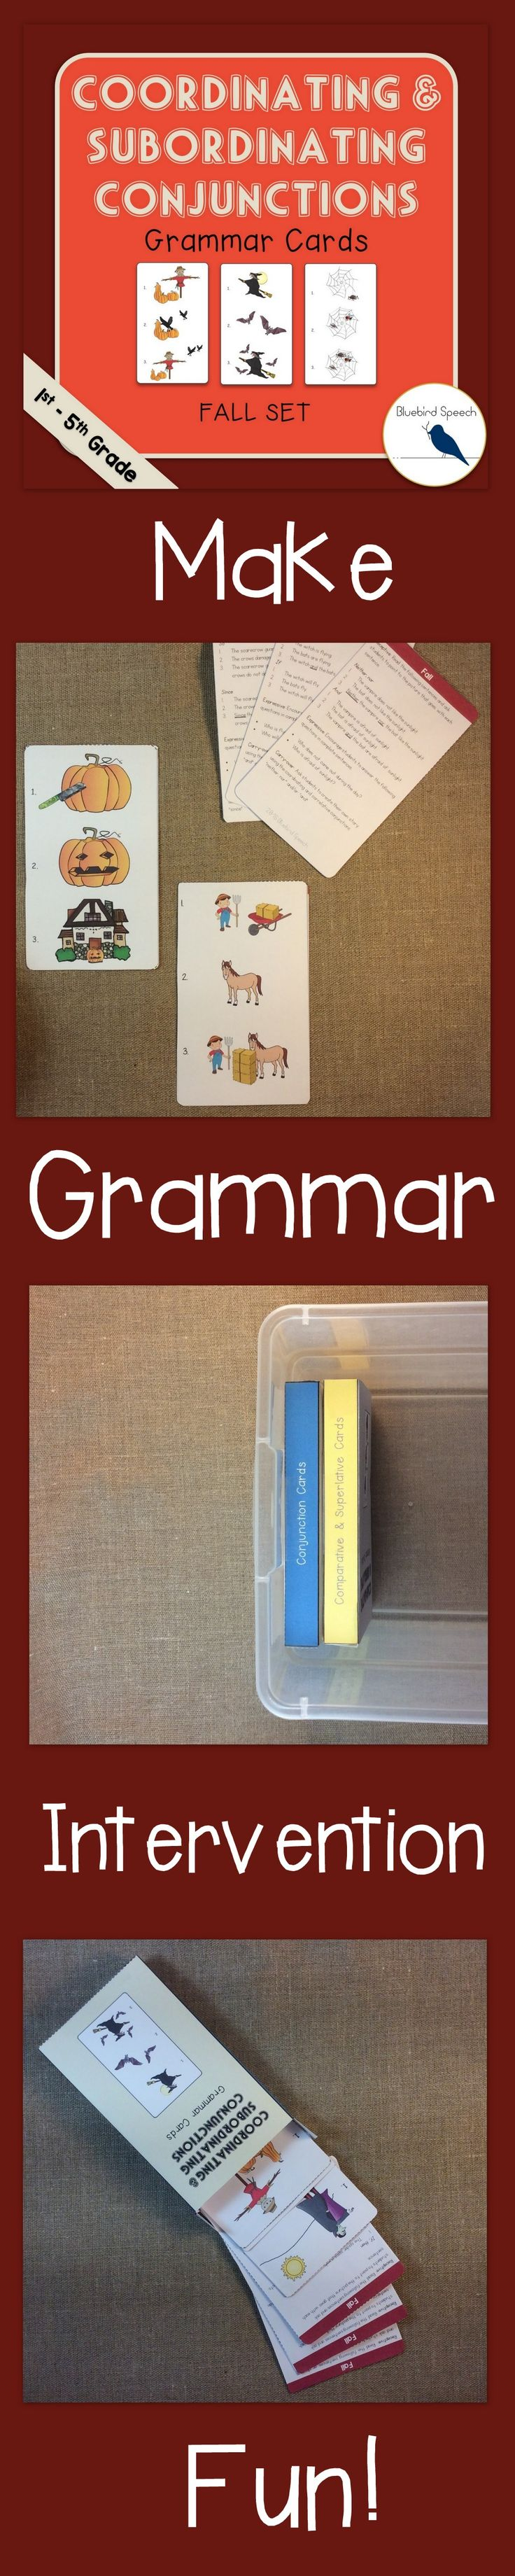 Are you working on grammar goals with 1st - 5th graders? These grammar cards make it FUN and EASY to target conjunctions and compound sentences when stating cause and effect or reasoning. Conjunction examples: Coordinating - ✔ And ✔ So ✔ For - Subordinating - ✔ After ✔ Because - Correlative - ✔ Neither, nor - ✔ If, then